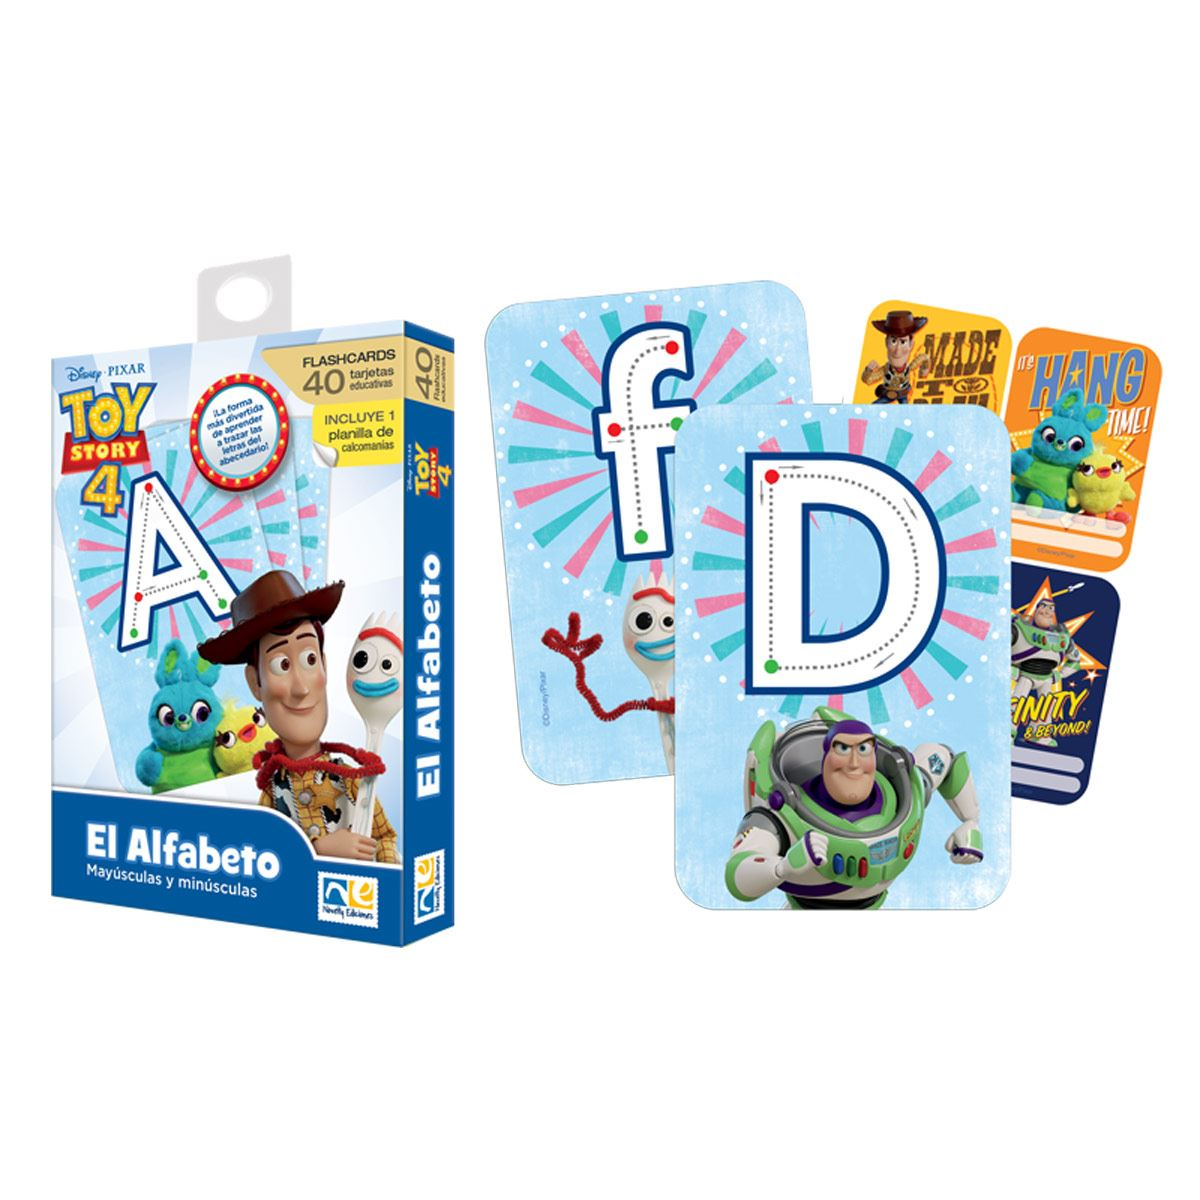 Flashcards Alfabeto Toy story Novelty